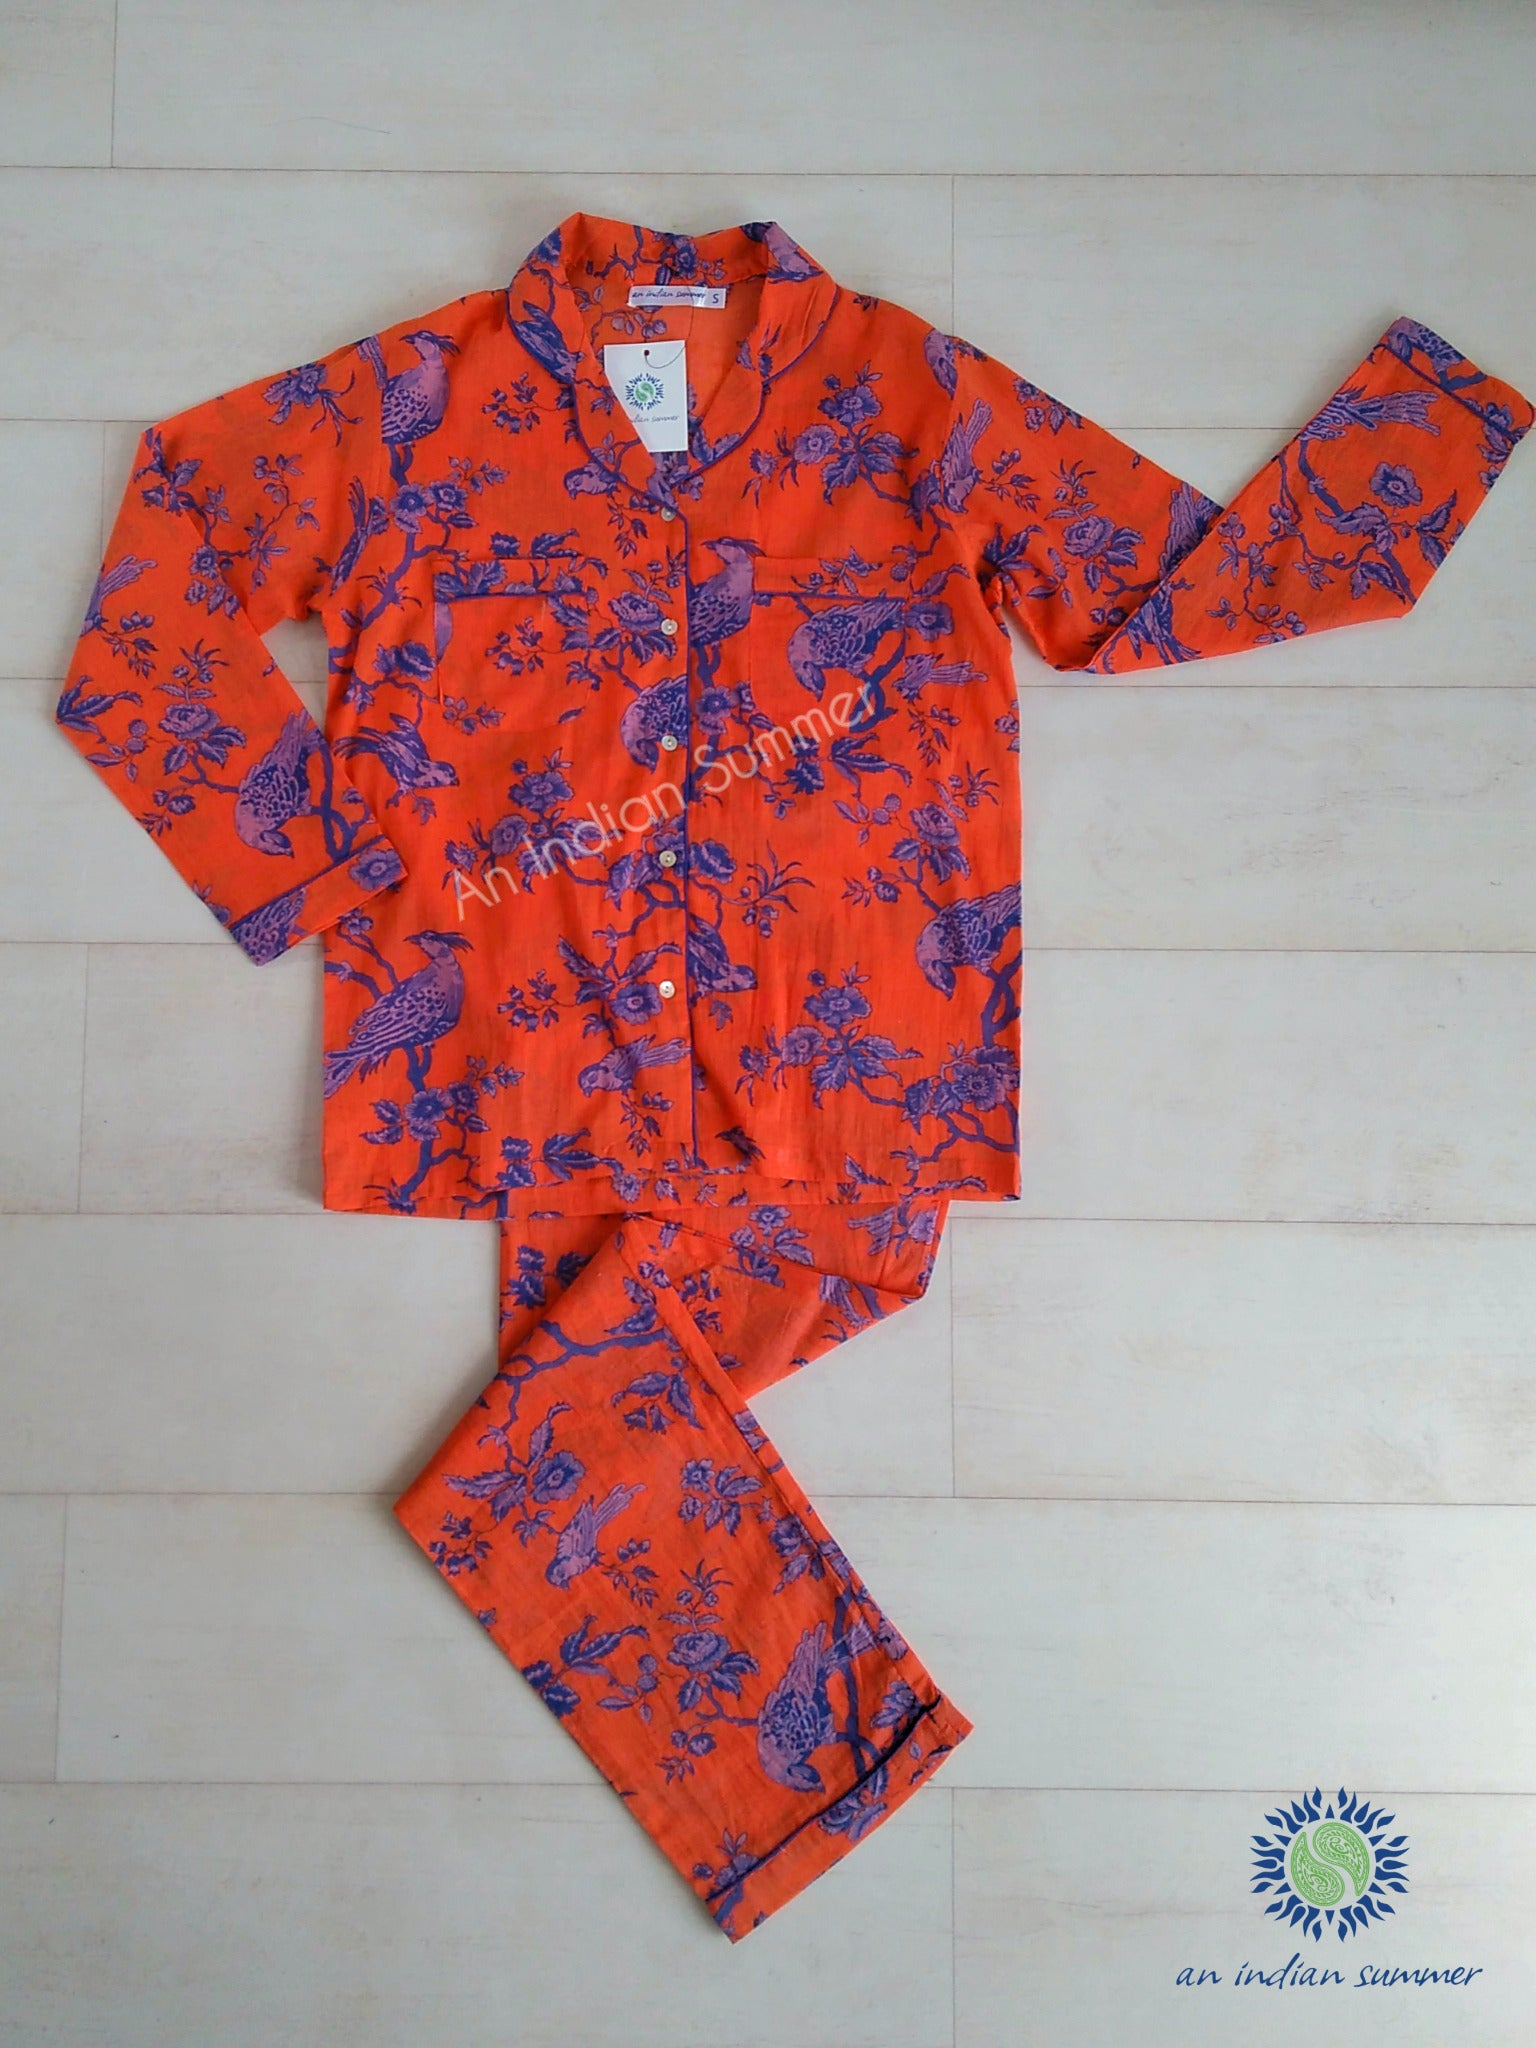 Jacobean Print Pyjama Set | Orange & Blue | Cotton Voile | An Indian Summer | Seasonless Timeless Sustainable Ethical Authentic Artisan Conscious Clothing Lifestyle Brand